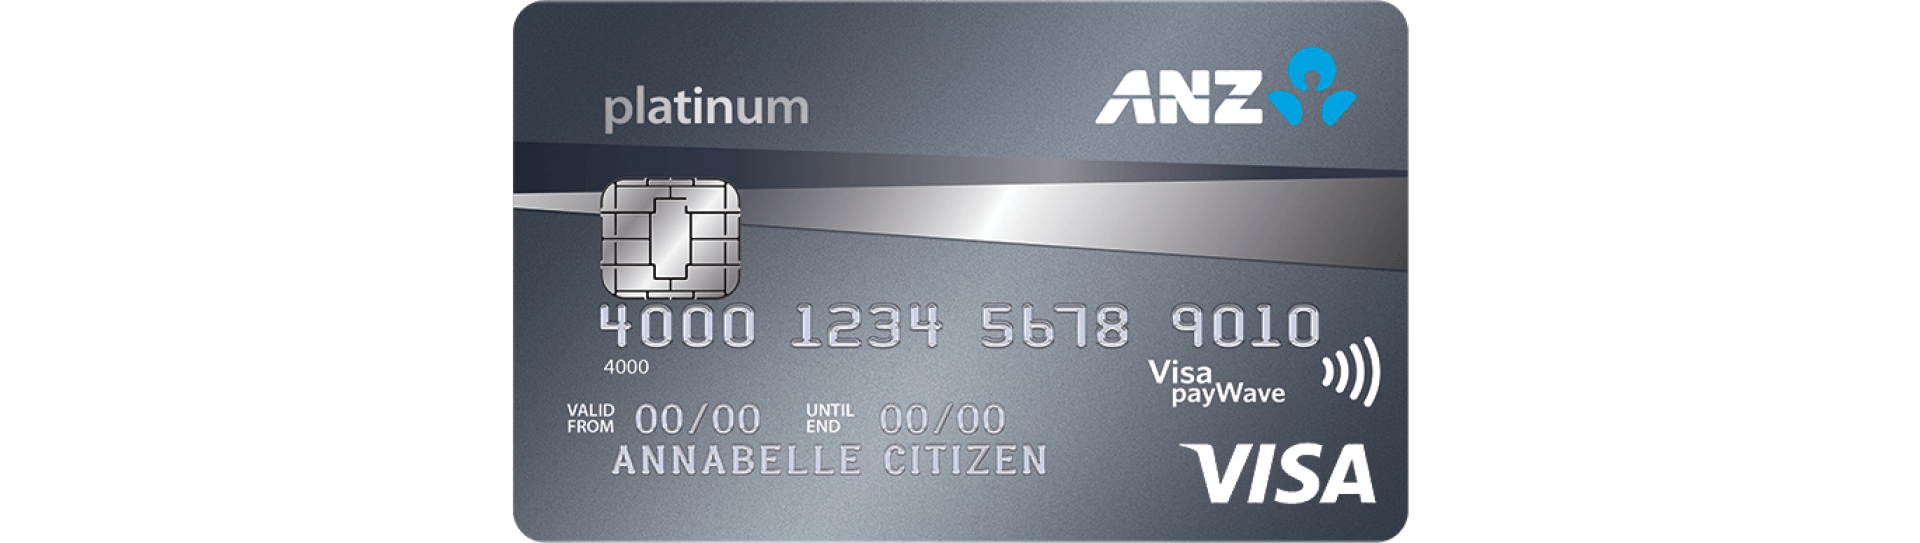 Wonderful Anz Business Credit Cards Gallery - Business Card Ideas ...